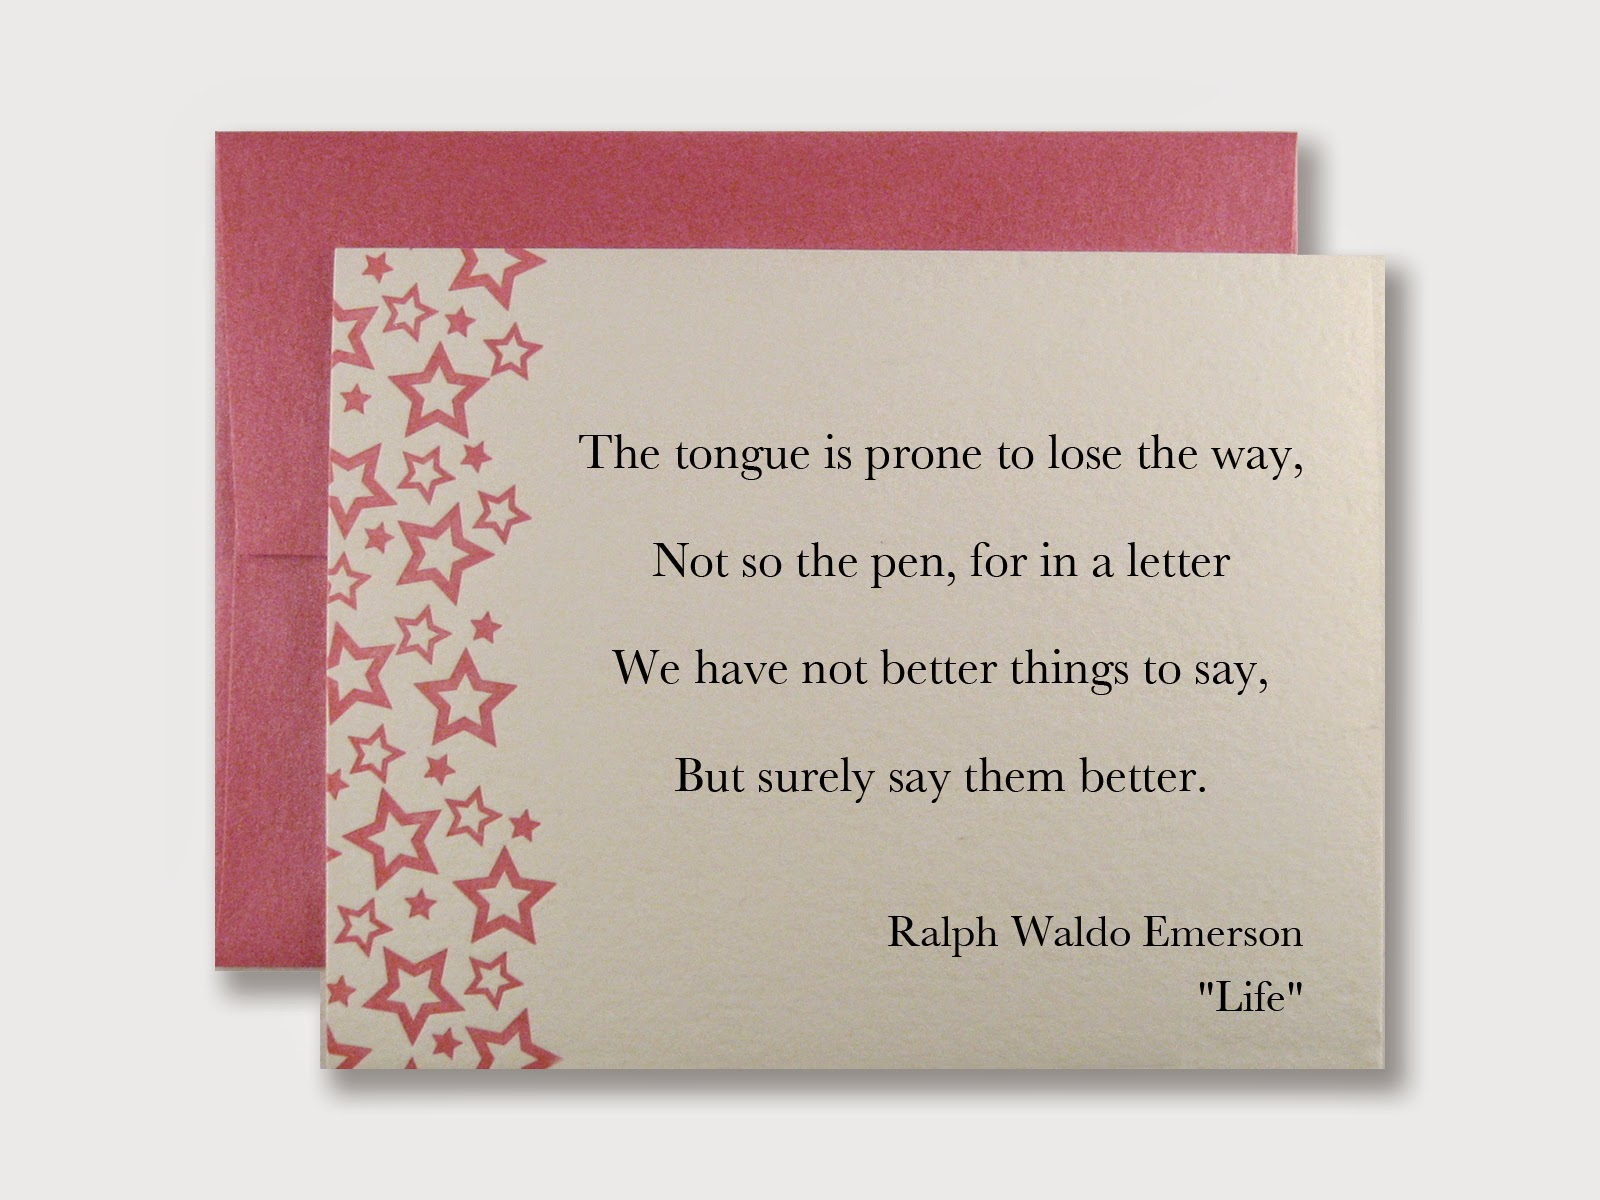 "The tongue is prone to lose the way, Not so the pen, for in a letter We have not better things to say, But surely say them better. -Ralph Waldo Emerson ""Life"""